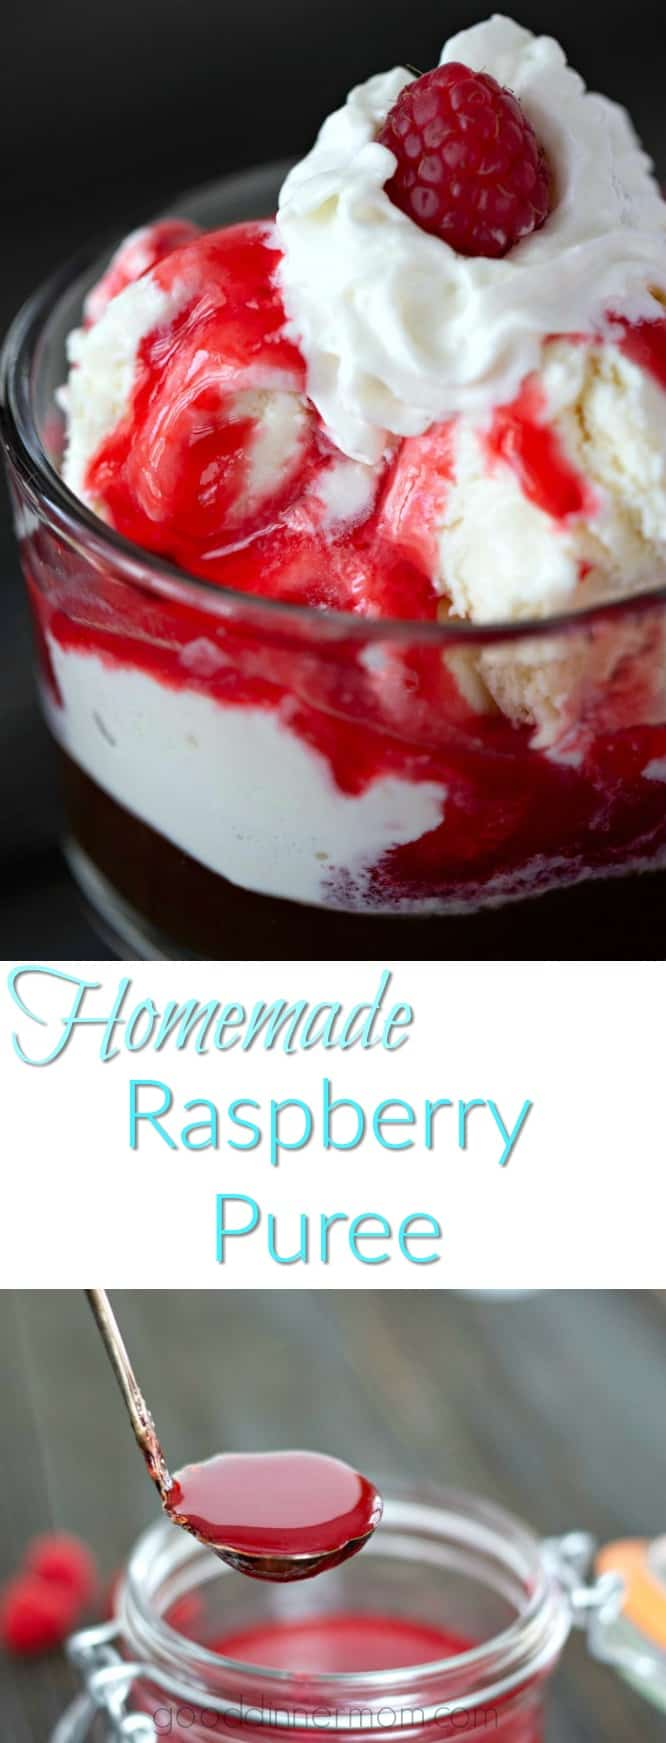 A simple Raspberry Puree easy to make from scratch without ingredients you don't want. Pour over ice cream, cheesecake, brownies, or mix in hot chocolate. #desserts #easyrecipes